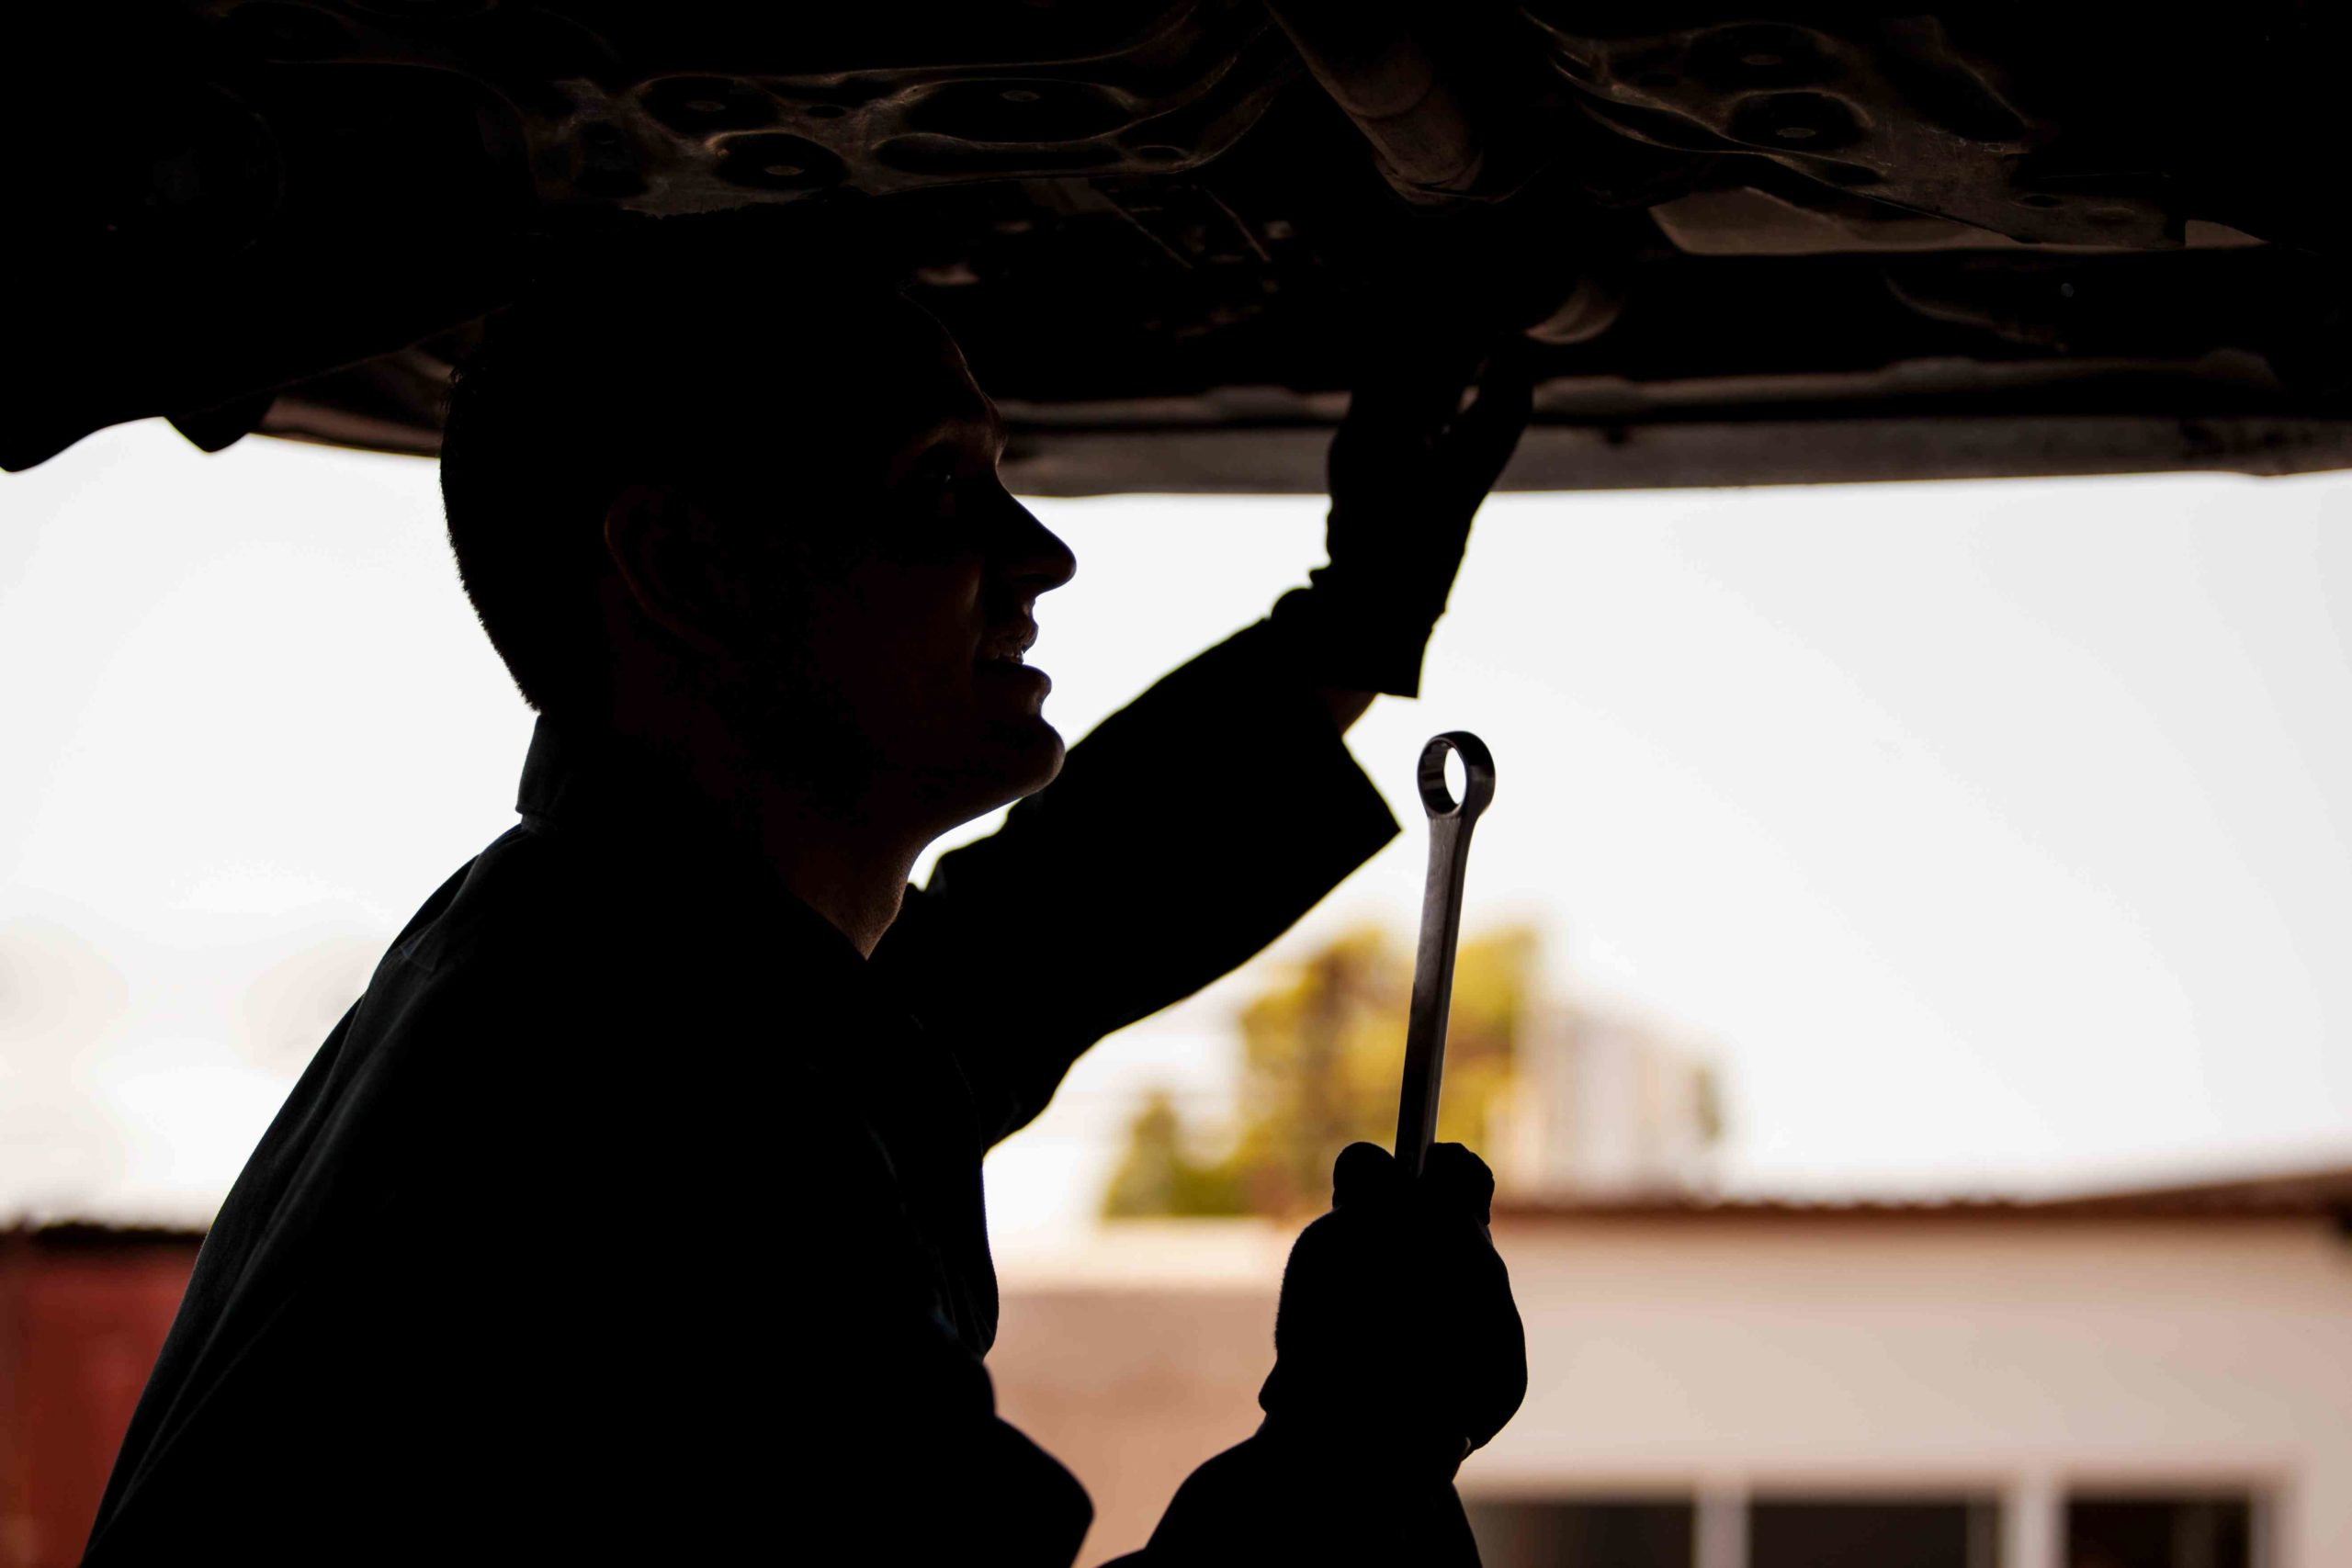 auto repair technician working on a car